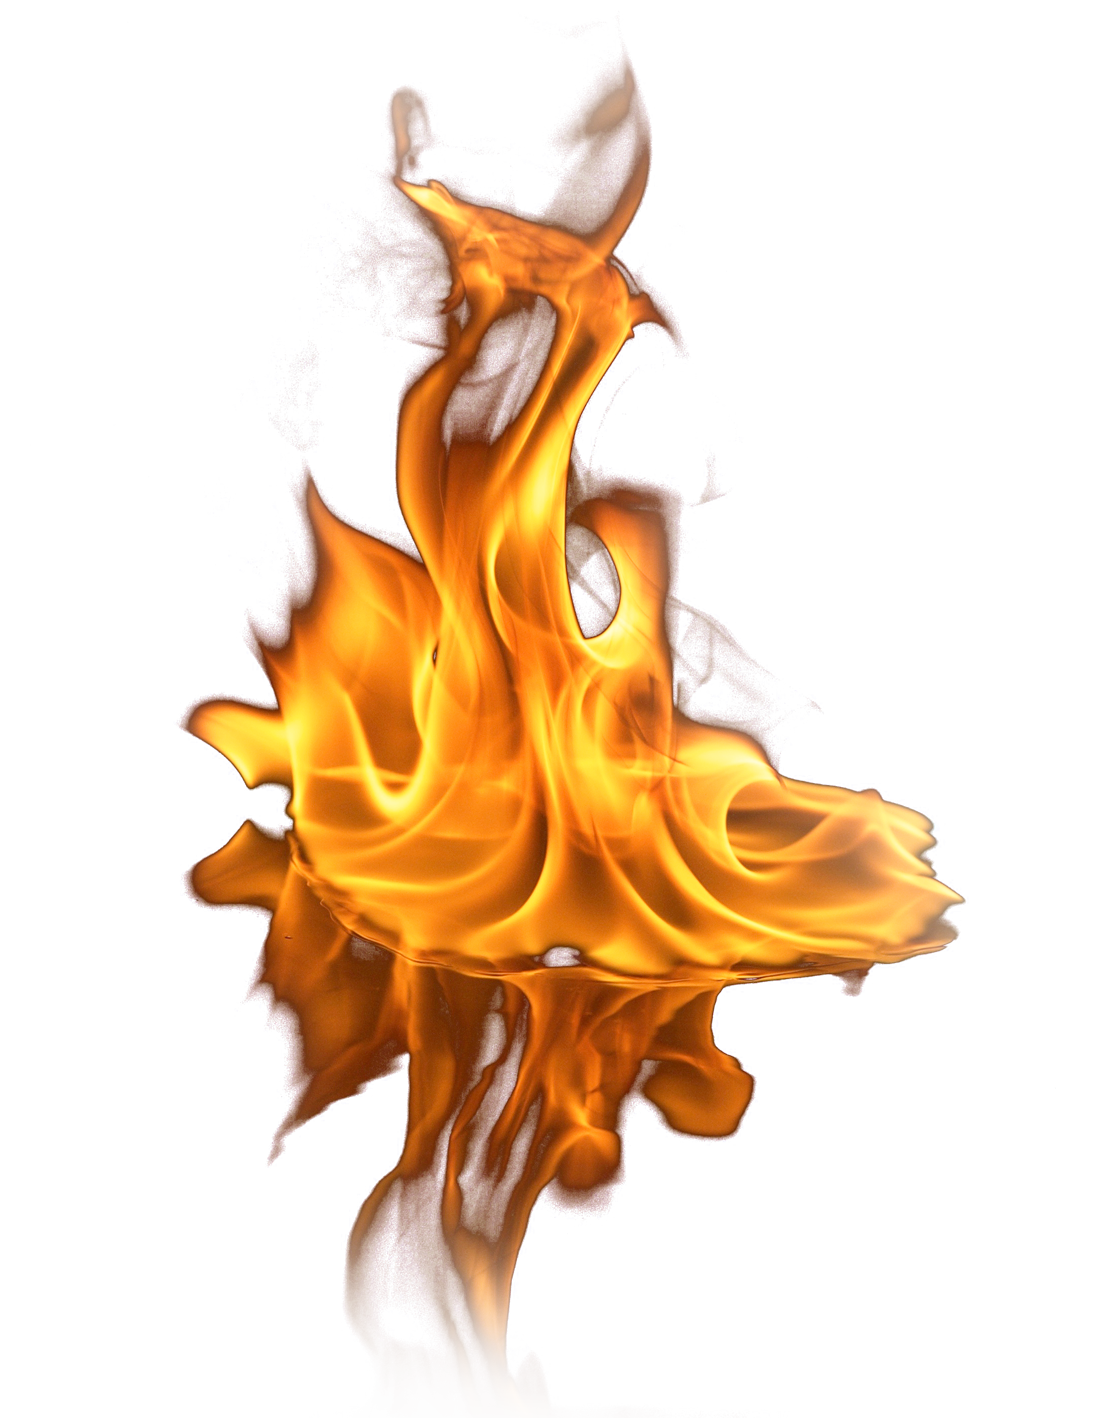 Fire on Ground PNG Image